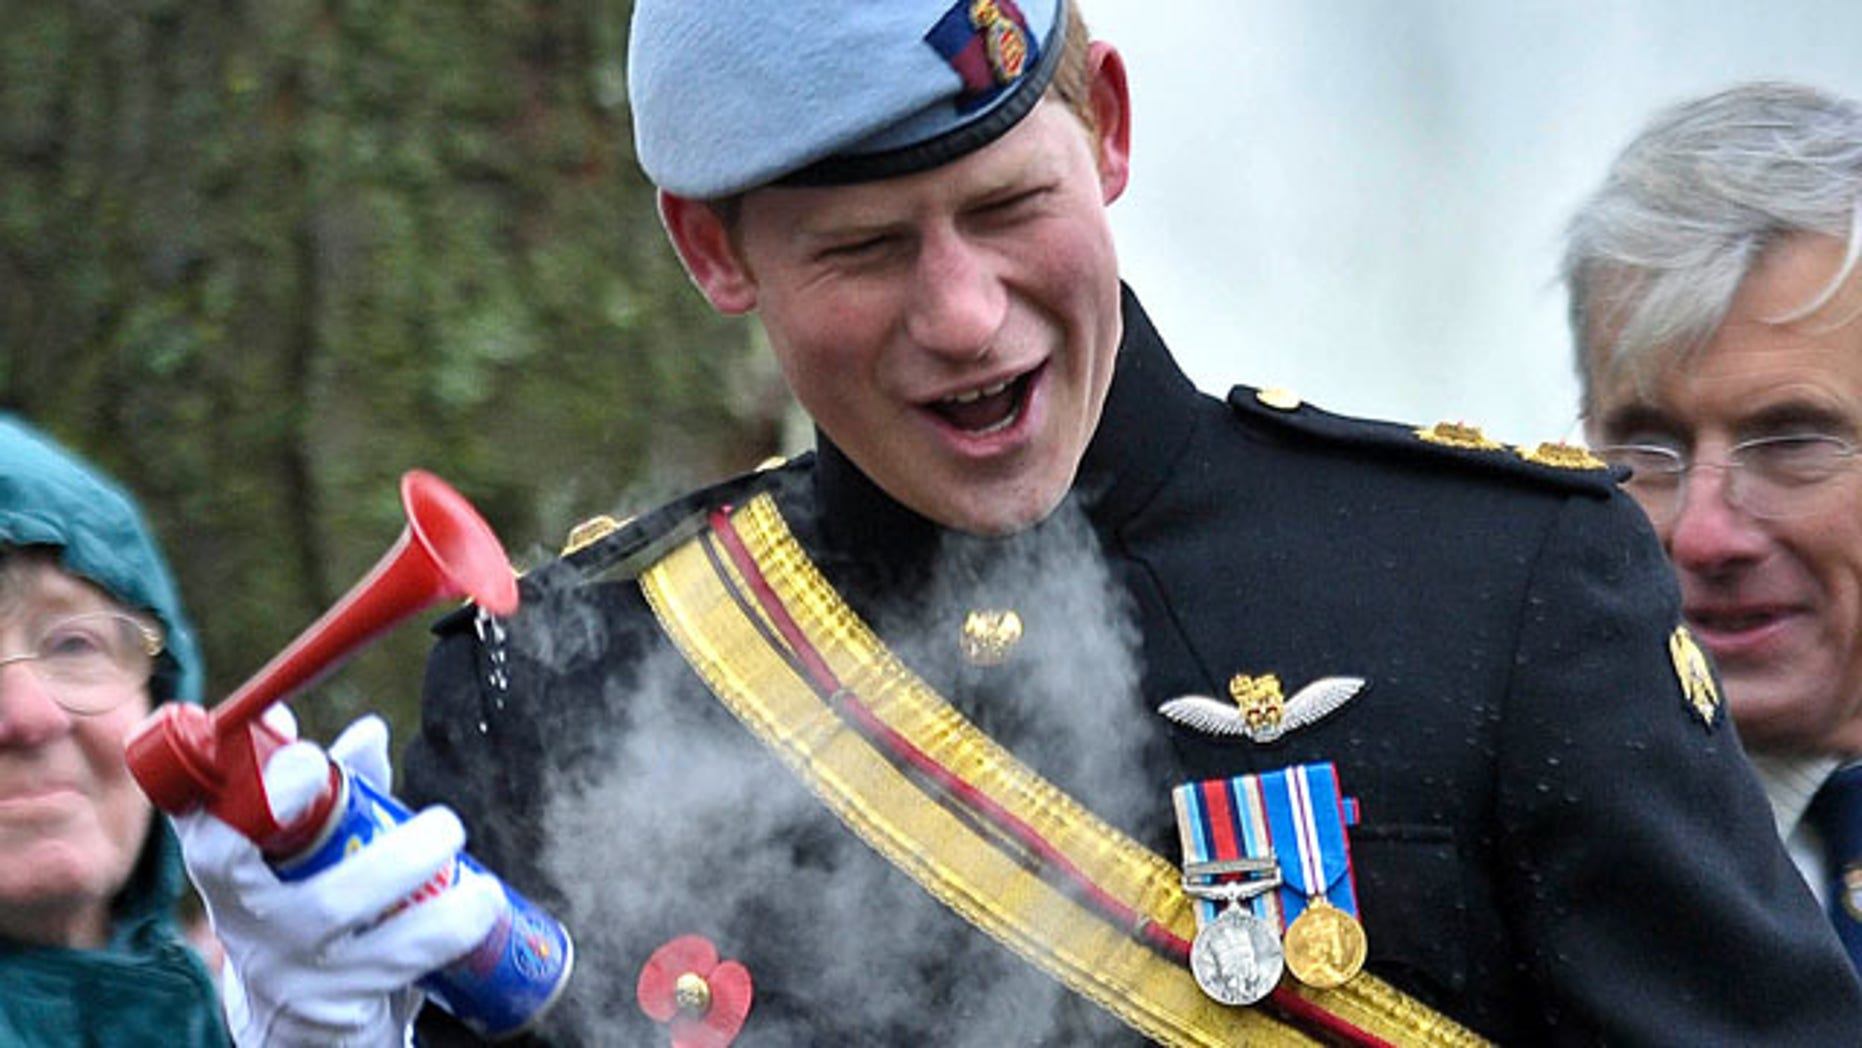 Nov. 9: Britain's Prince Harry laughs as an air horn given to him to start a military charity march malfunctions, during the opening of the Royal British Legion Field of Remembrance, at Wootton Bassett, England.